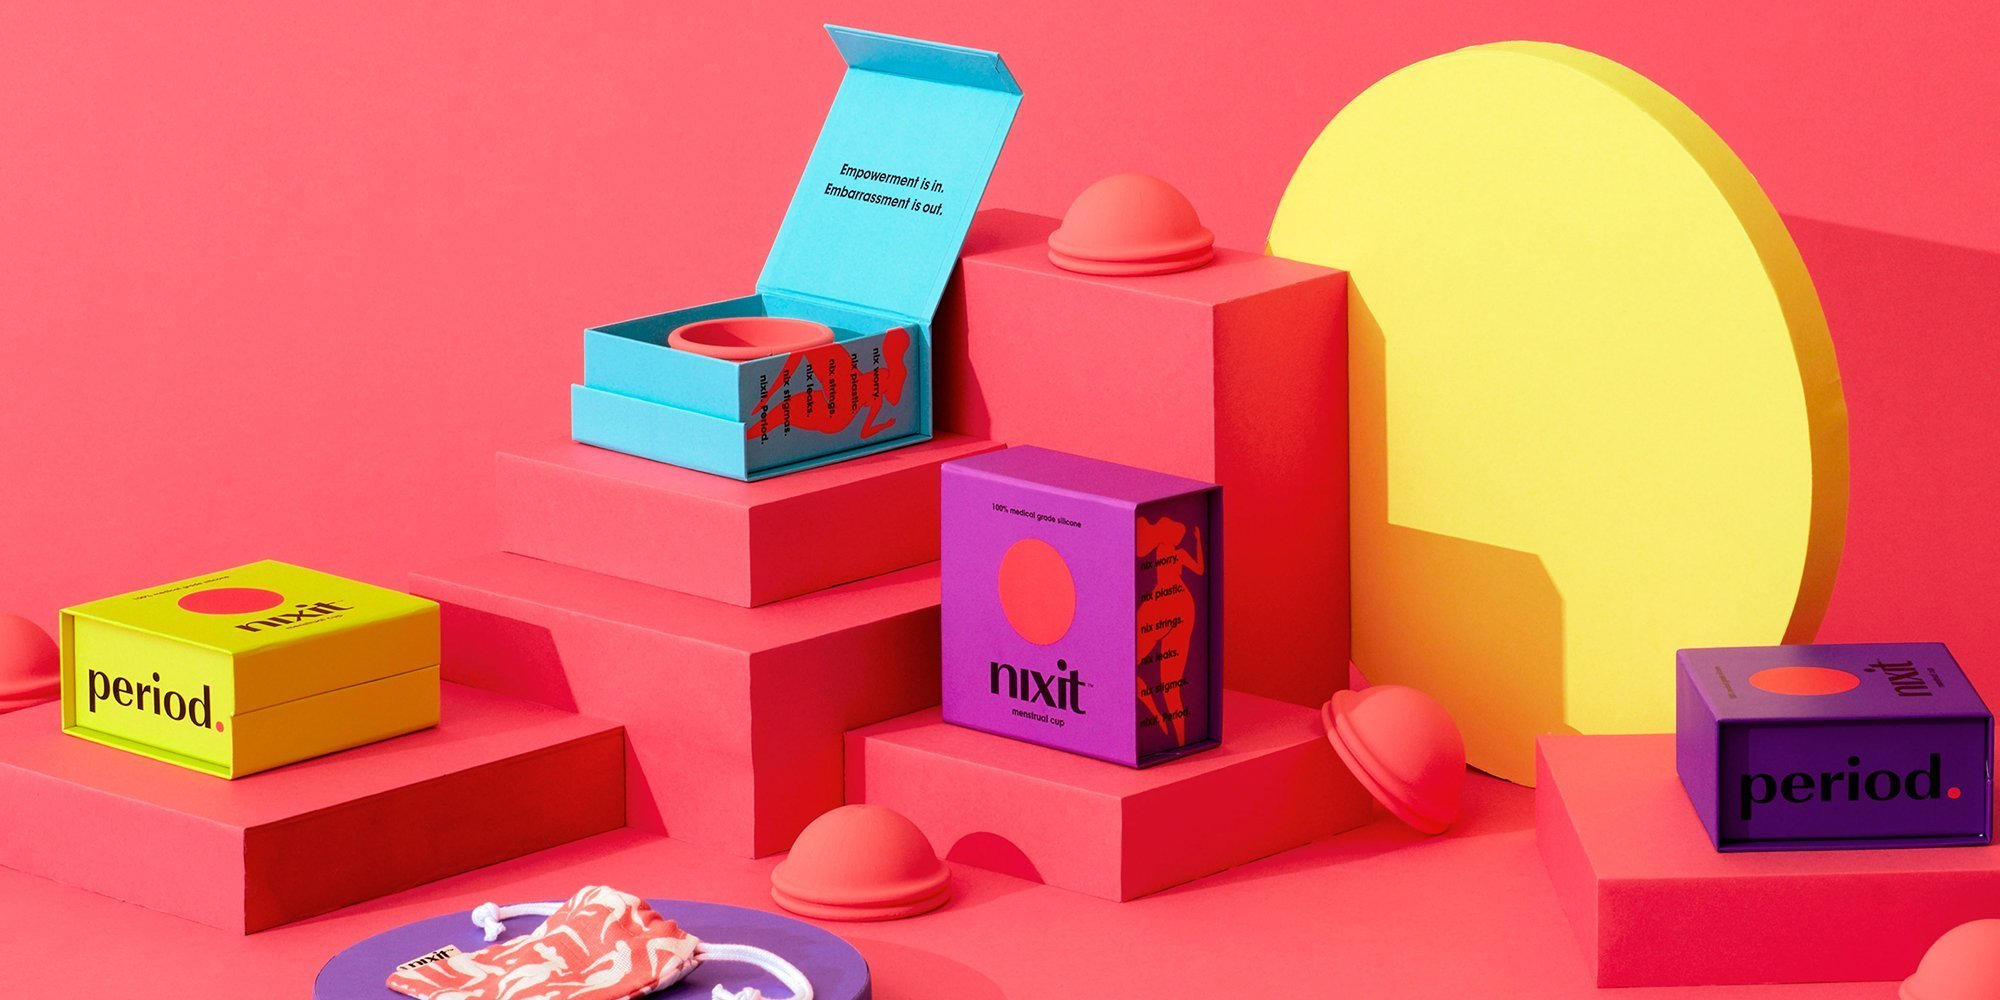 New Bold Brand Nixit Wants Women To Nix Uncomfortable Menstrual Cups And Period Shame